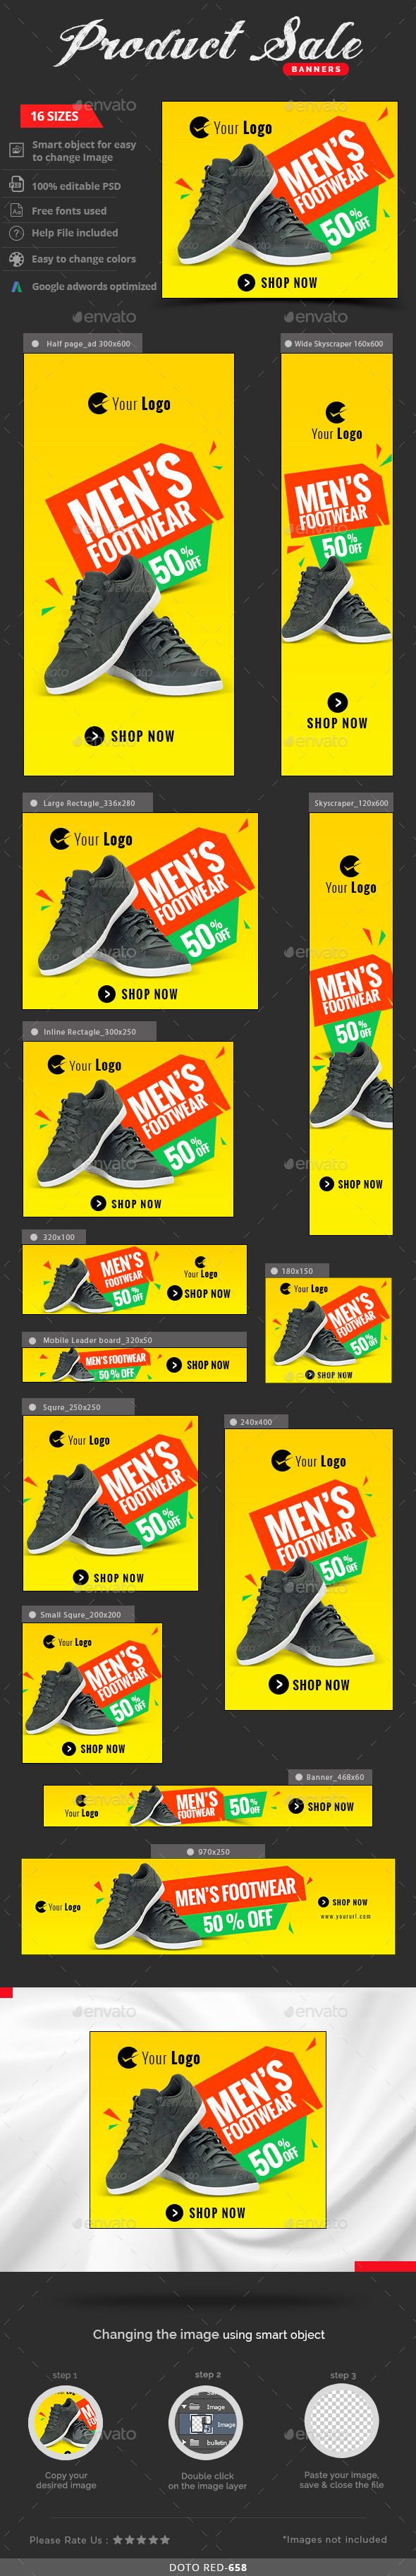 Product Sale Web Banners Template #design #ads Download: http://graphicriver.net/item/product-sale-banners/12952788?ref=ksioks